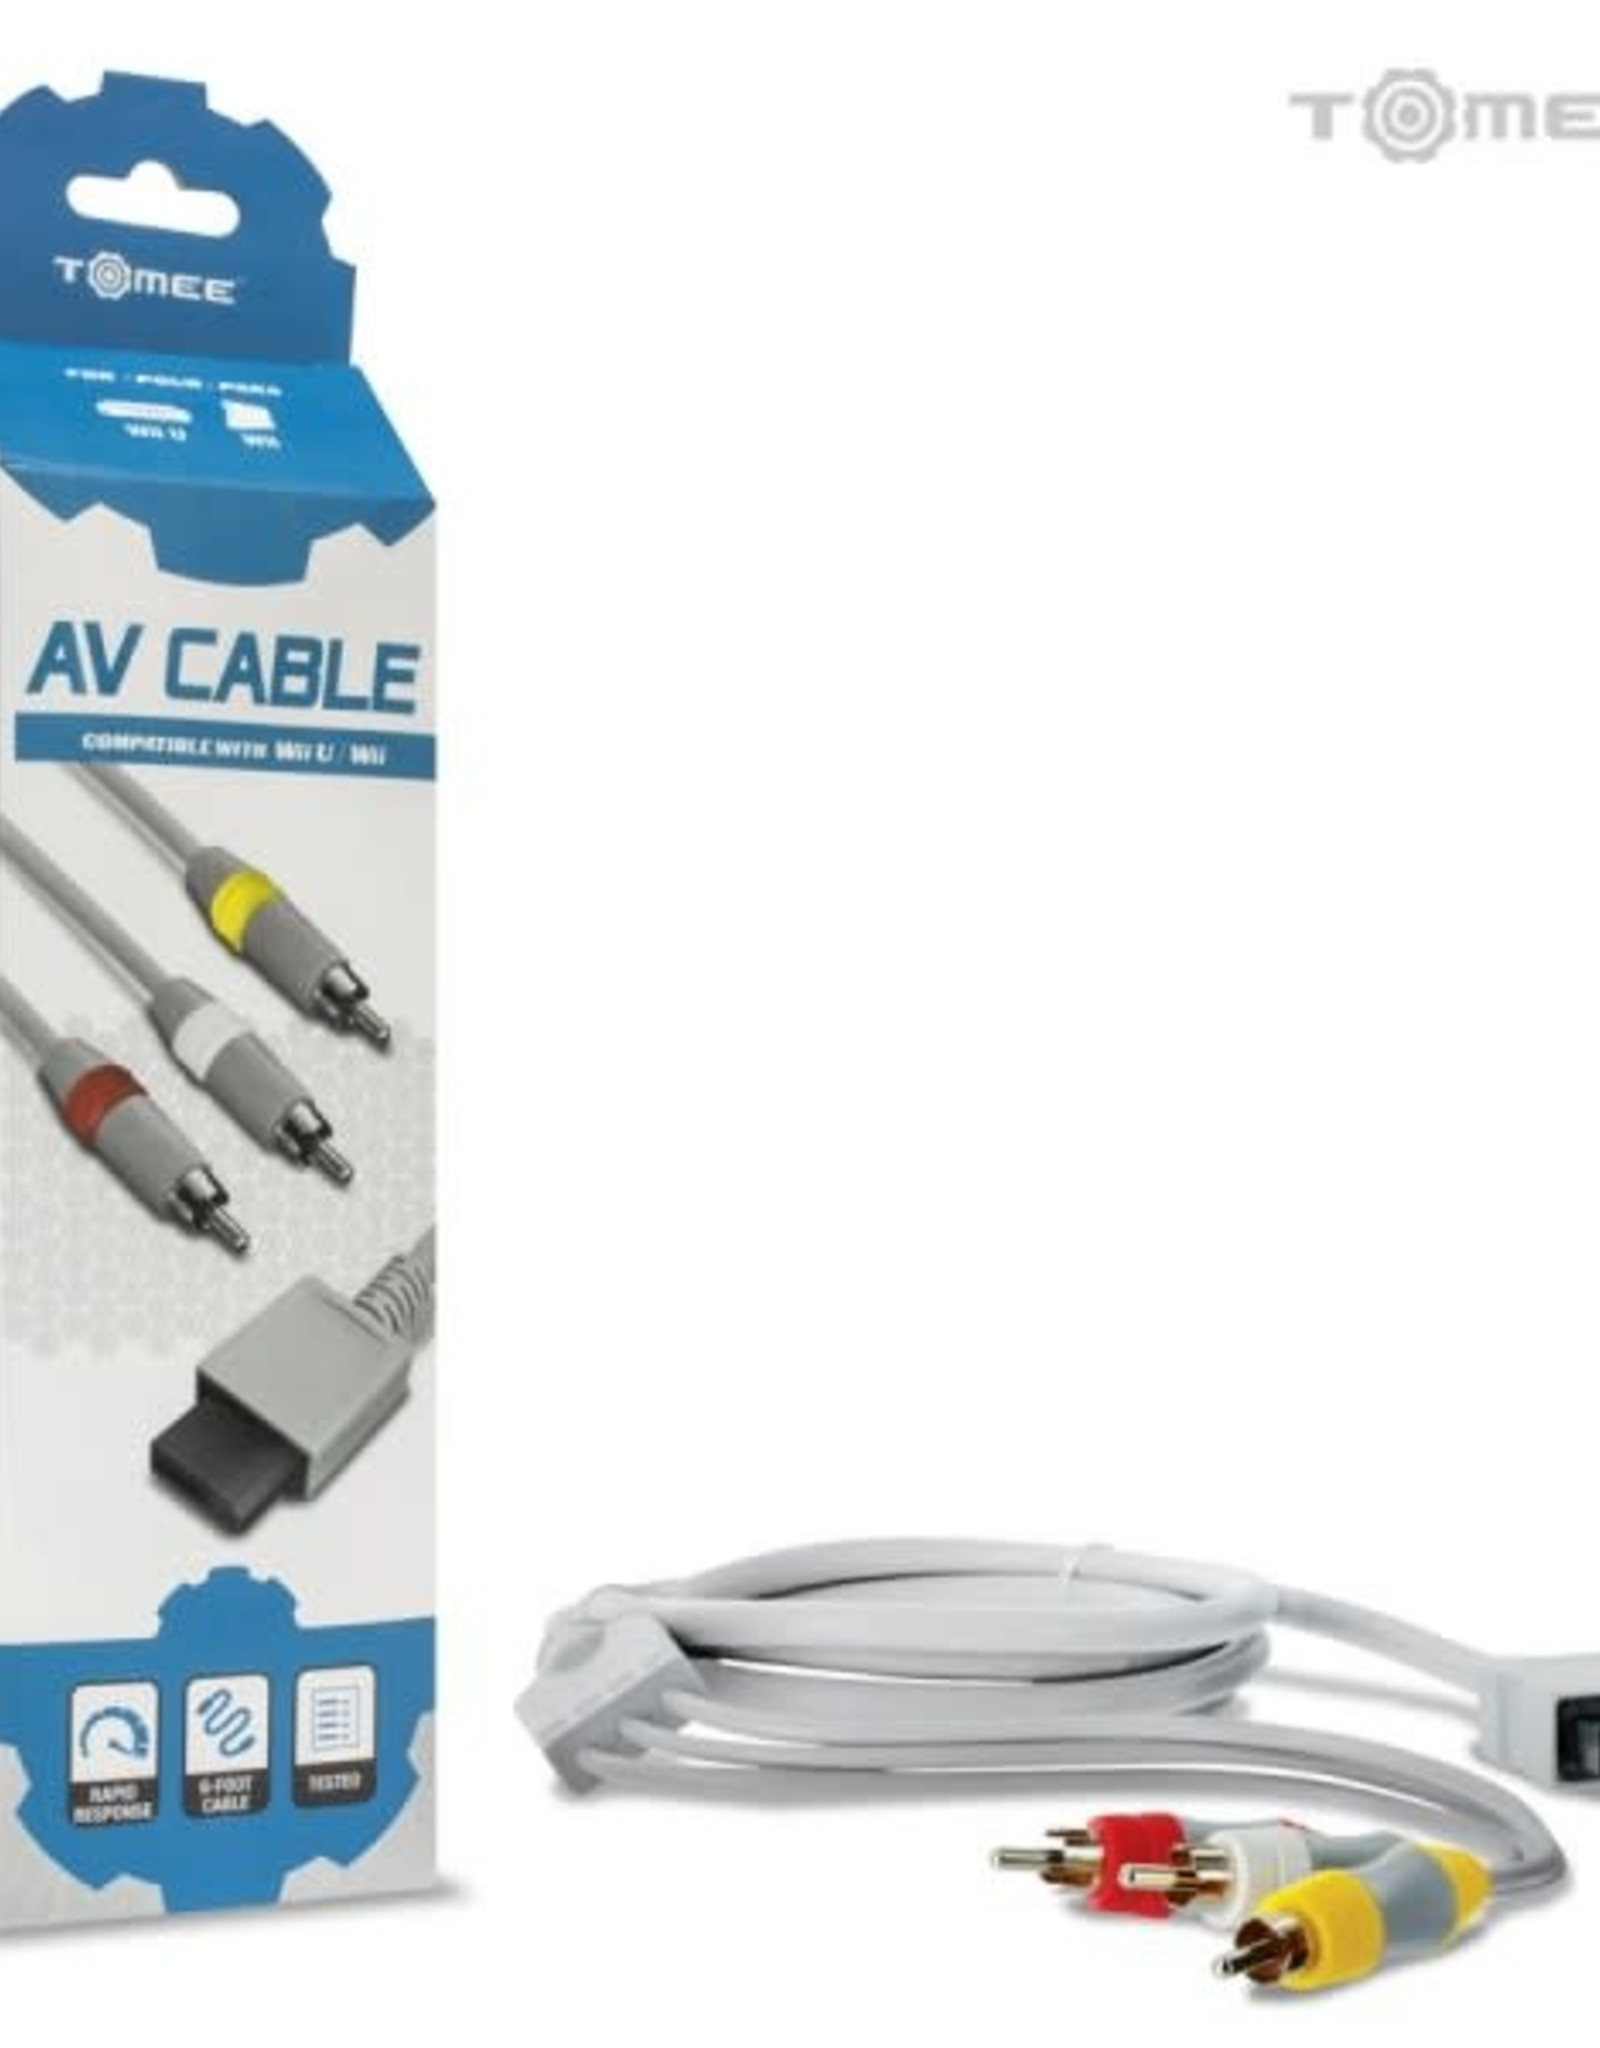 Tomee AV Cable for Wii U® / Wii®